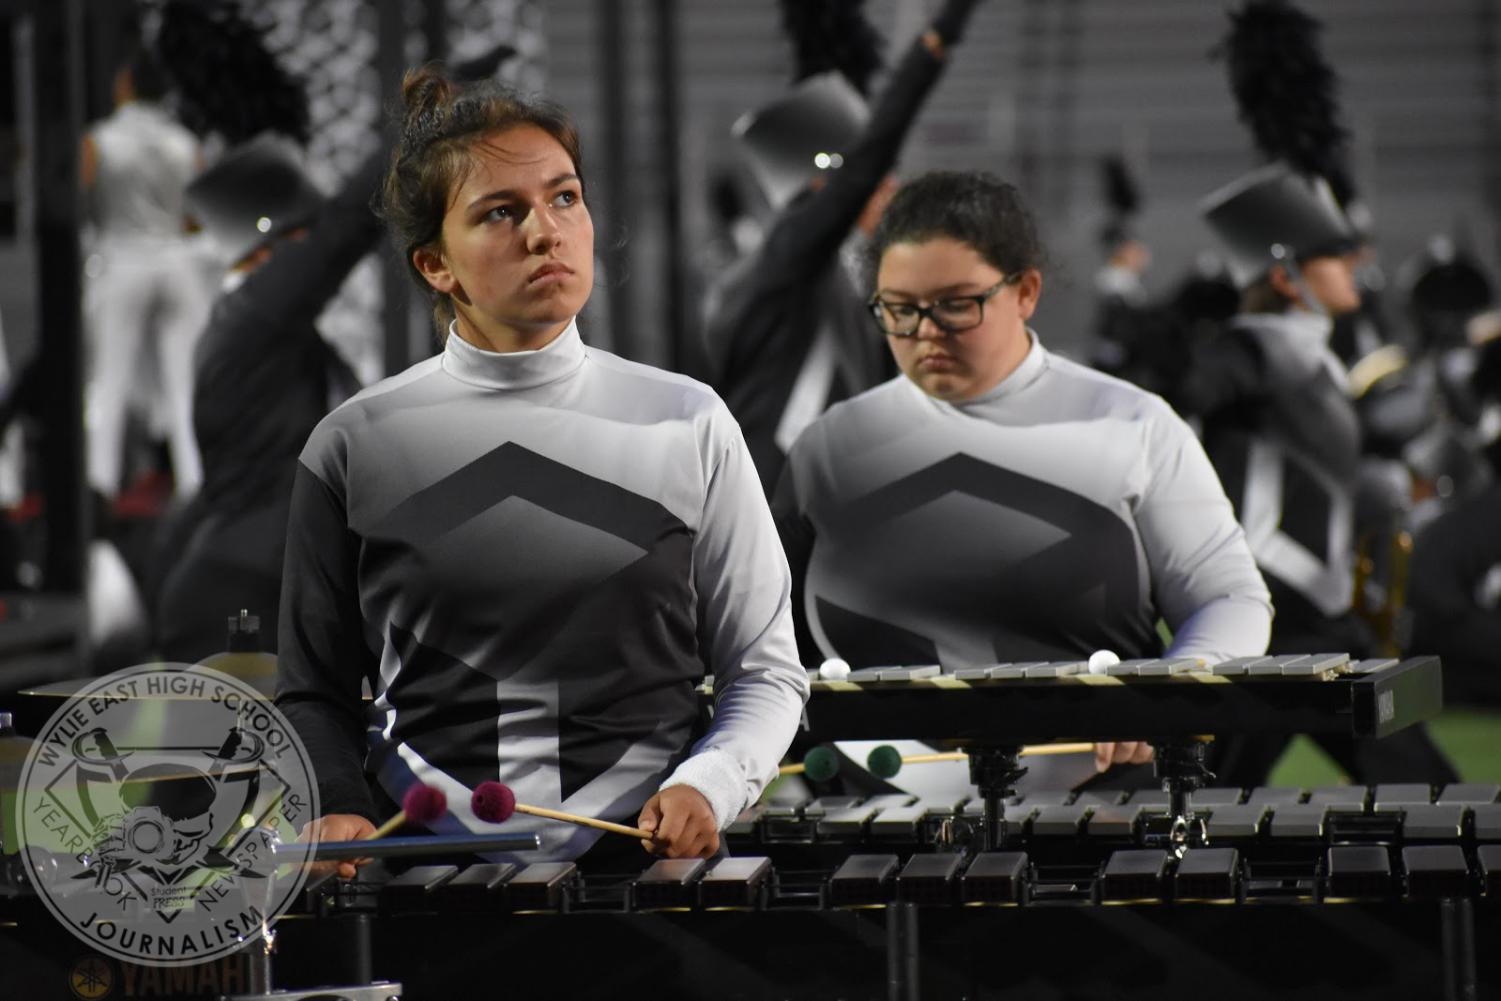 Focused+vibes+%5C%5C+As+she+watches+the+drum+majors%2C++sophomore+Kaitlin+Wiltcher+plays+her+vibraphone+during+the+band%E2%80%99s+performance+at+the+Wylie+Band+Night+Oct.+7.+The+band%E2%80%99s+show+is+titled+MASSive+and+features+music+from+Mozart%E2%80%99s+Requiem%2C+John+Adams%E2%80%99+Short+Ride+in+a+Fast+Machine%2C+Andrew+Lloyd+Webber%E2%80%99s+Masquerade+and+original+music+from+Christopher+Bill.+%E2%80%9CIt+was+cool+to+see+all+the+junior+highs+play+and+get+excited+over+watching+their+high+schools+perform%2C%E2%80%9D+Wiltcher+said.